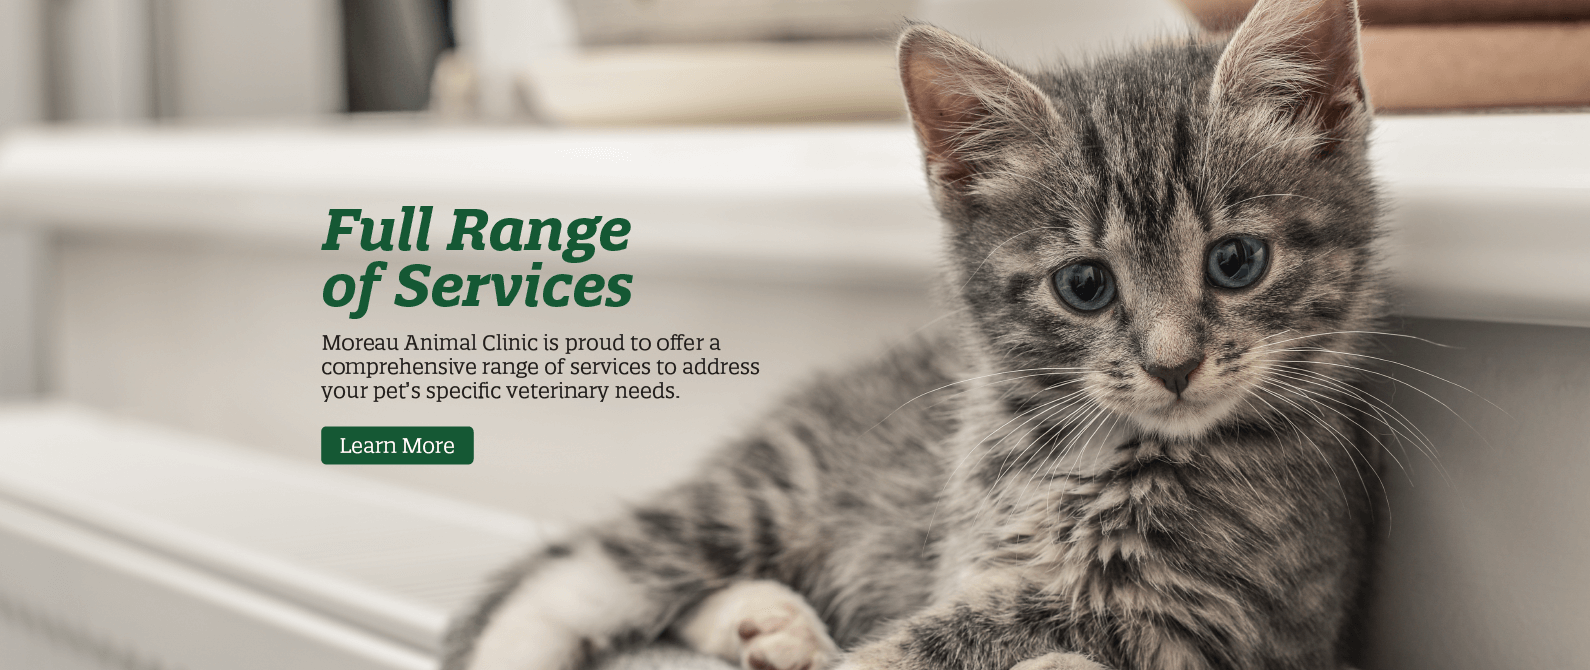 Full Range of Services